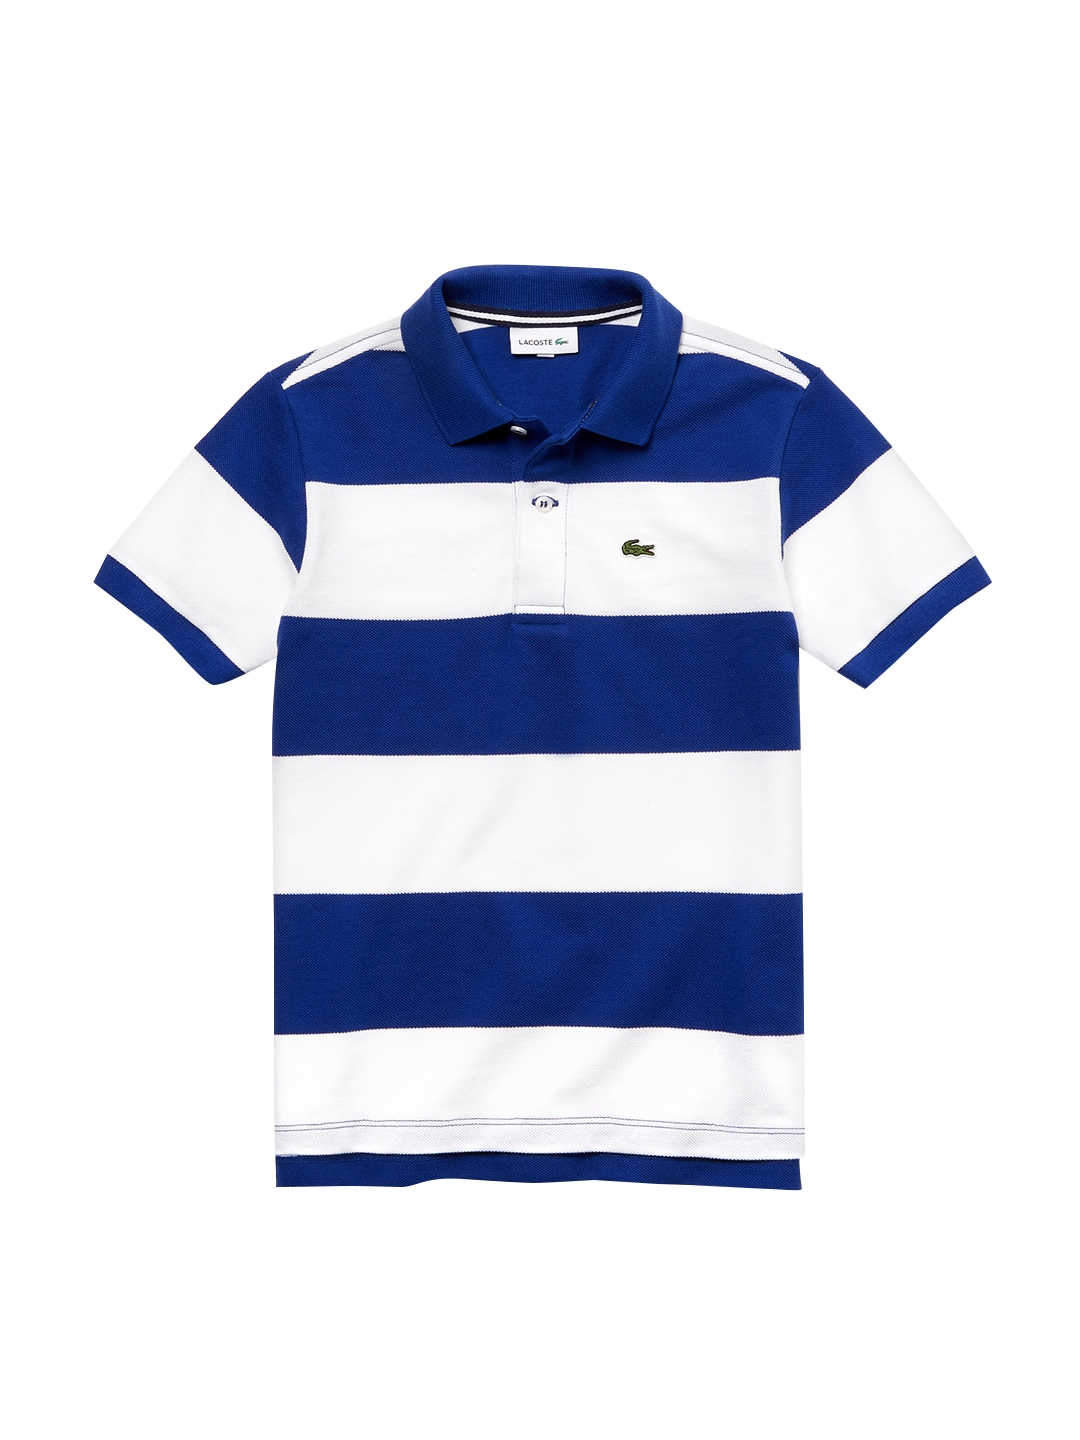 1873e32da85ac Lacoste - Buy Clothing   Accessories from Lacoste Store